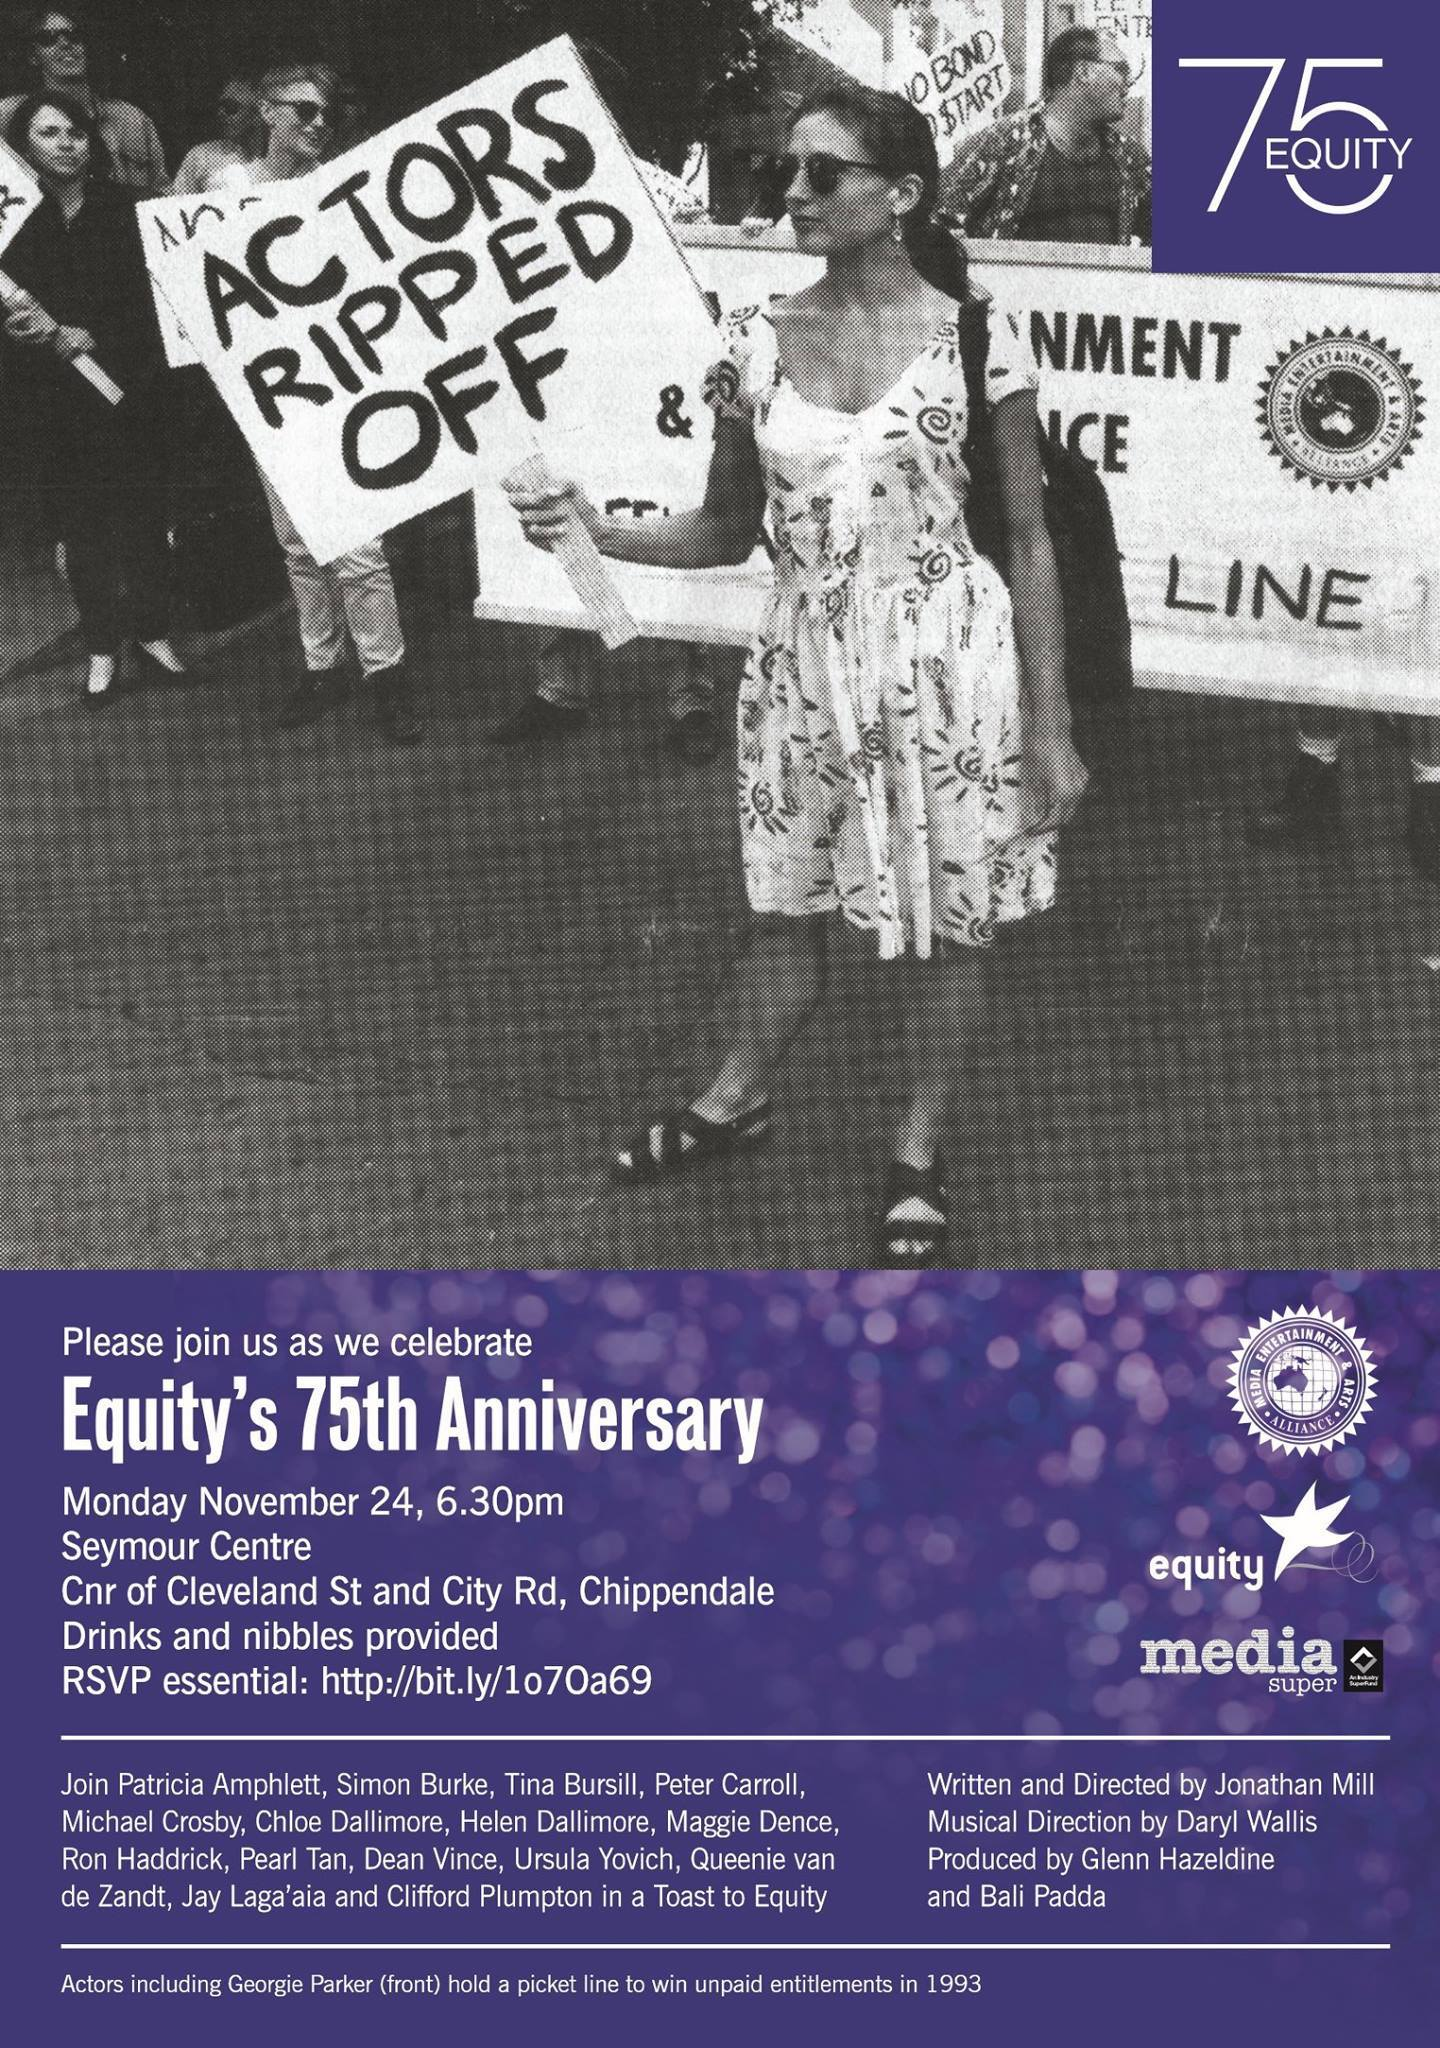 Equity75: A Toast to Equity